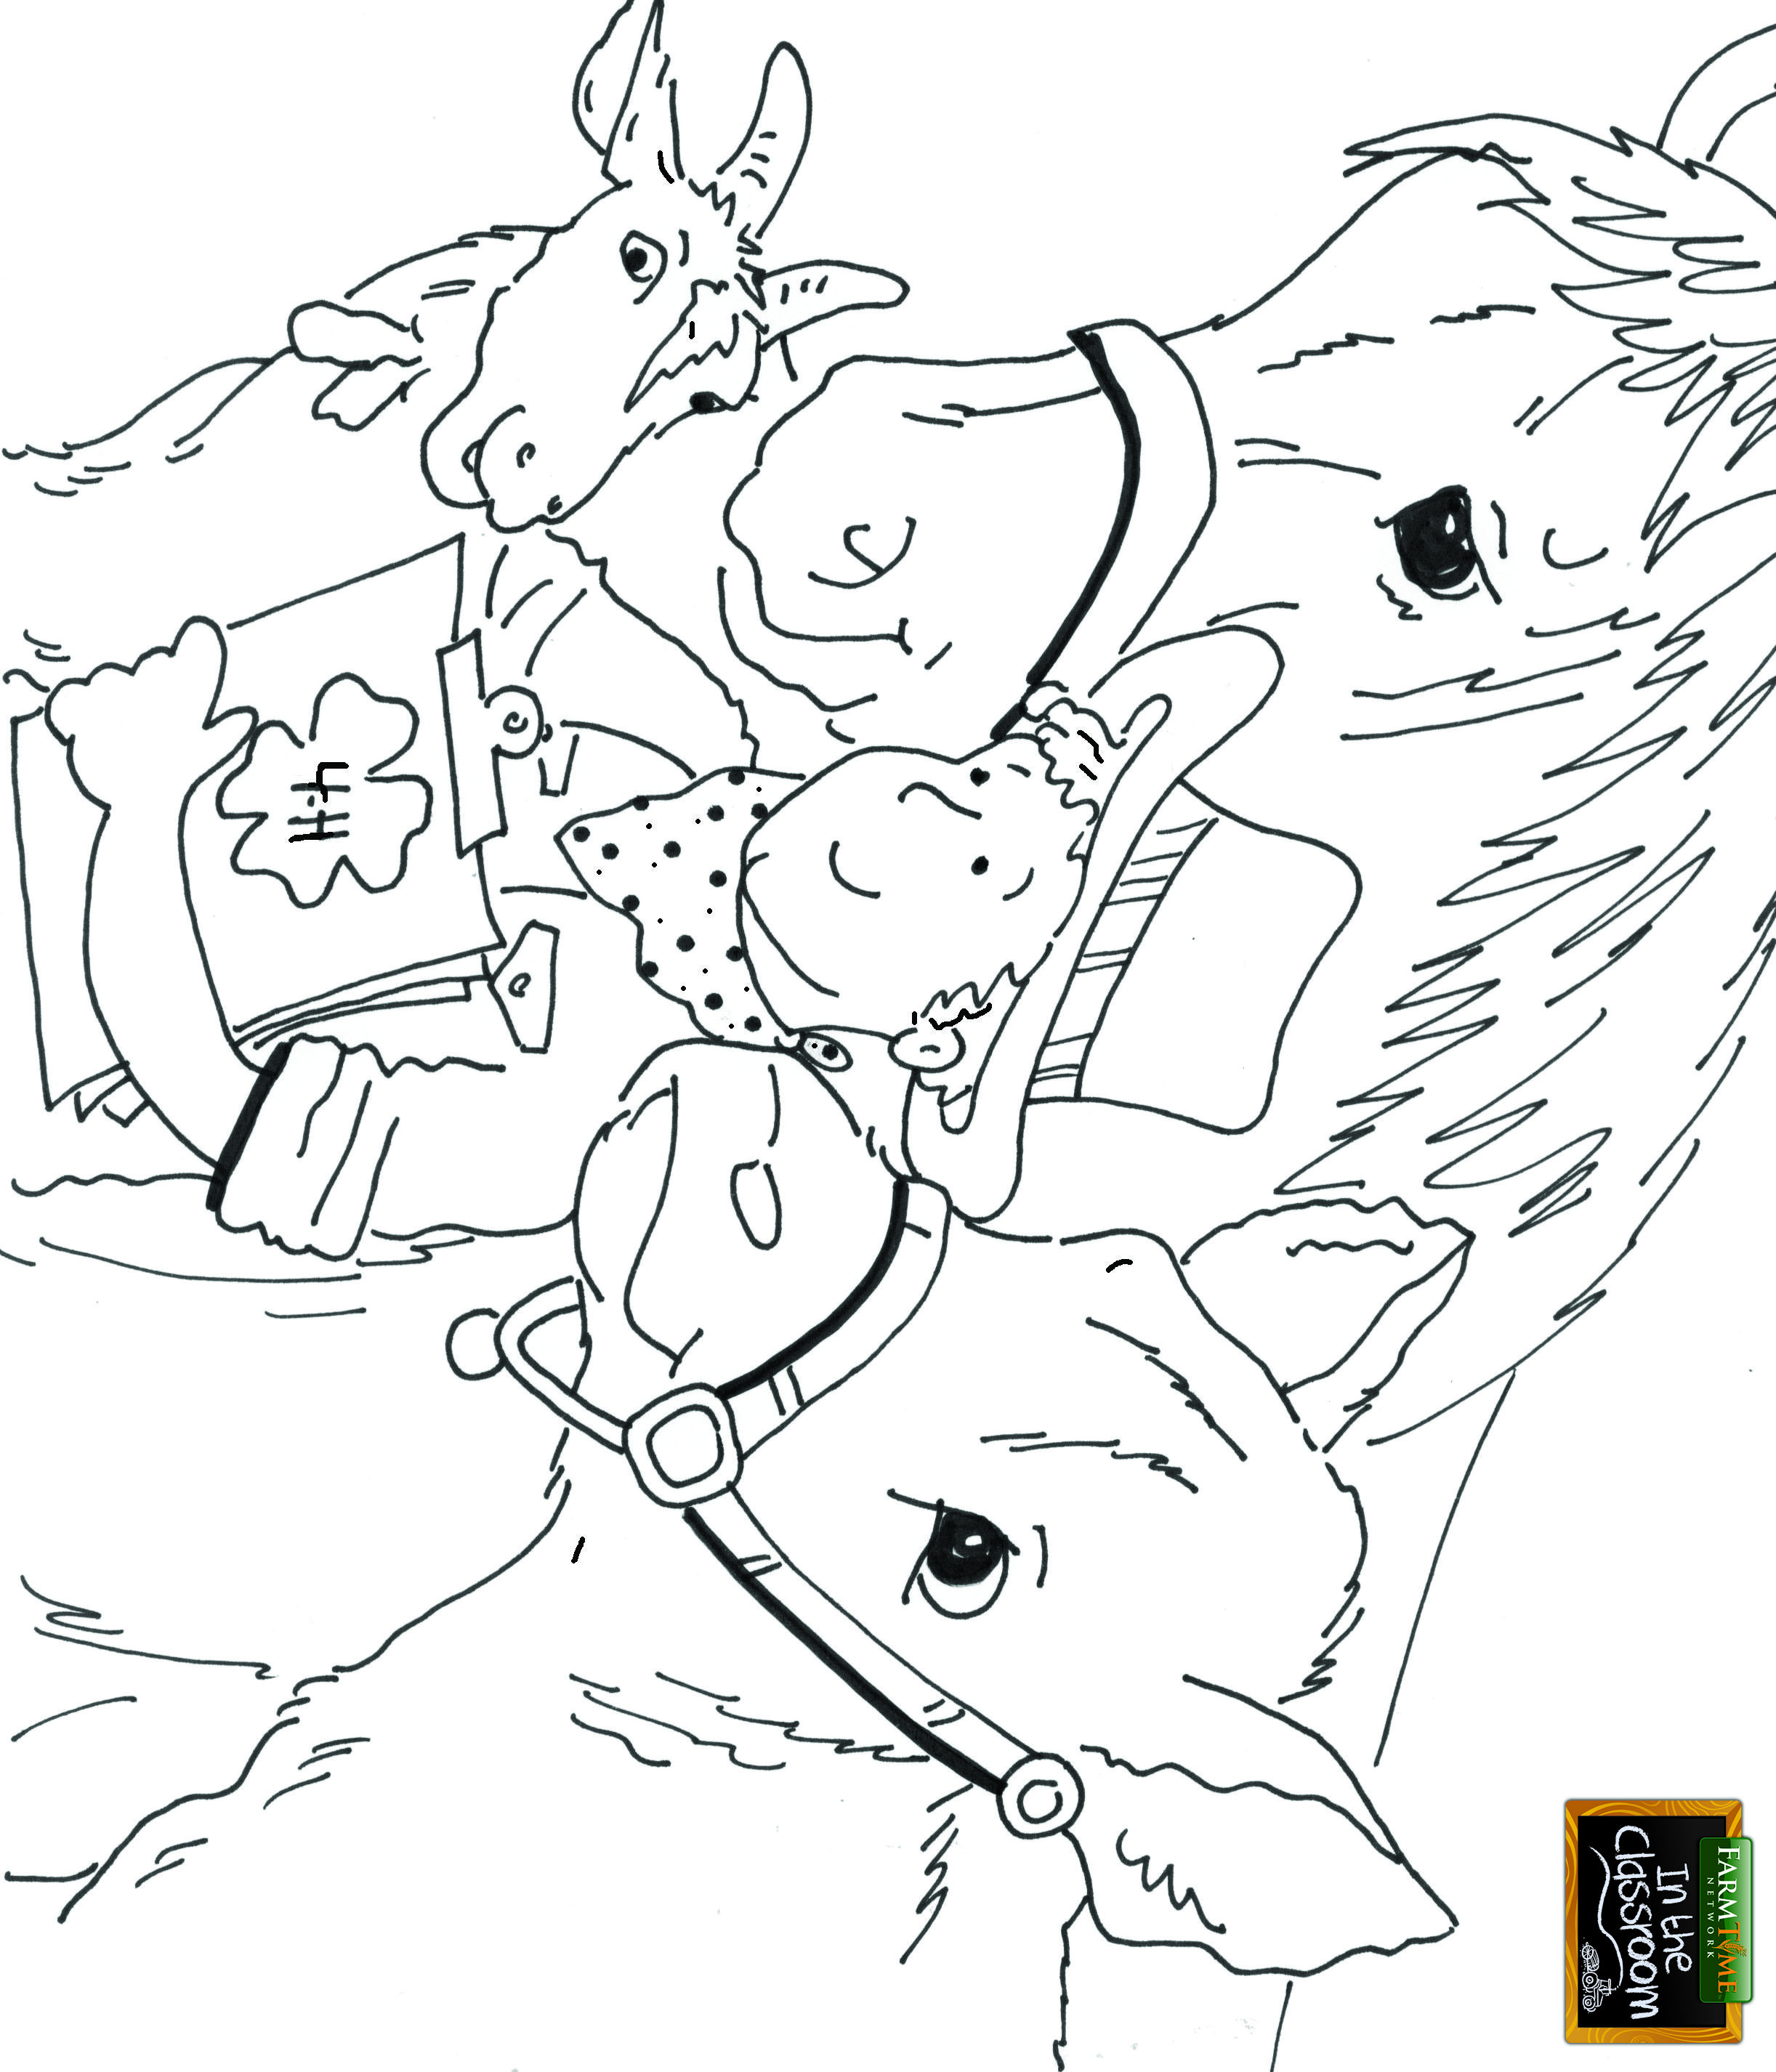 www.FarmTimeClassroom.com Free #Coloring Page #4h #horses